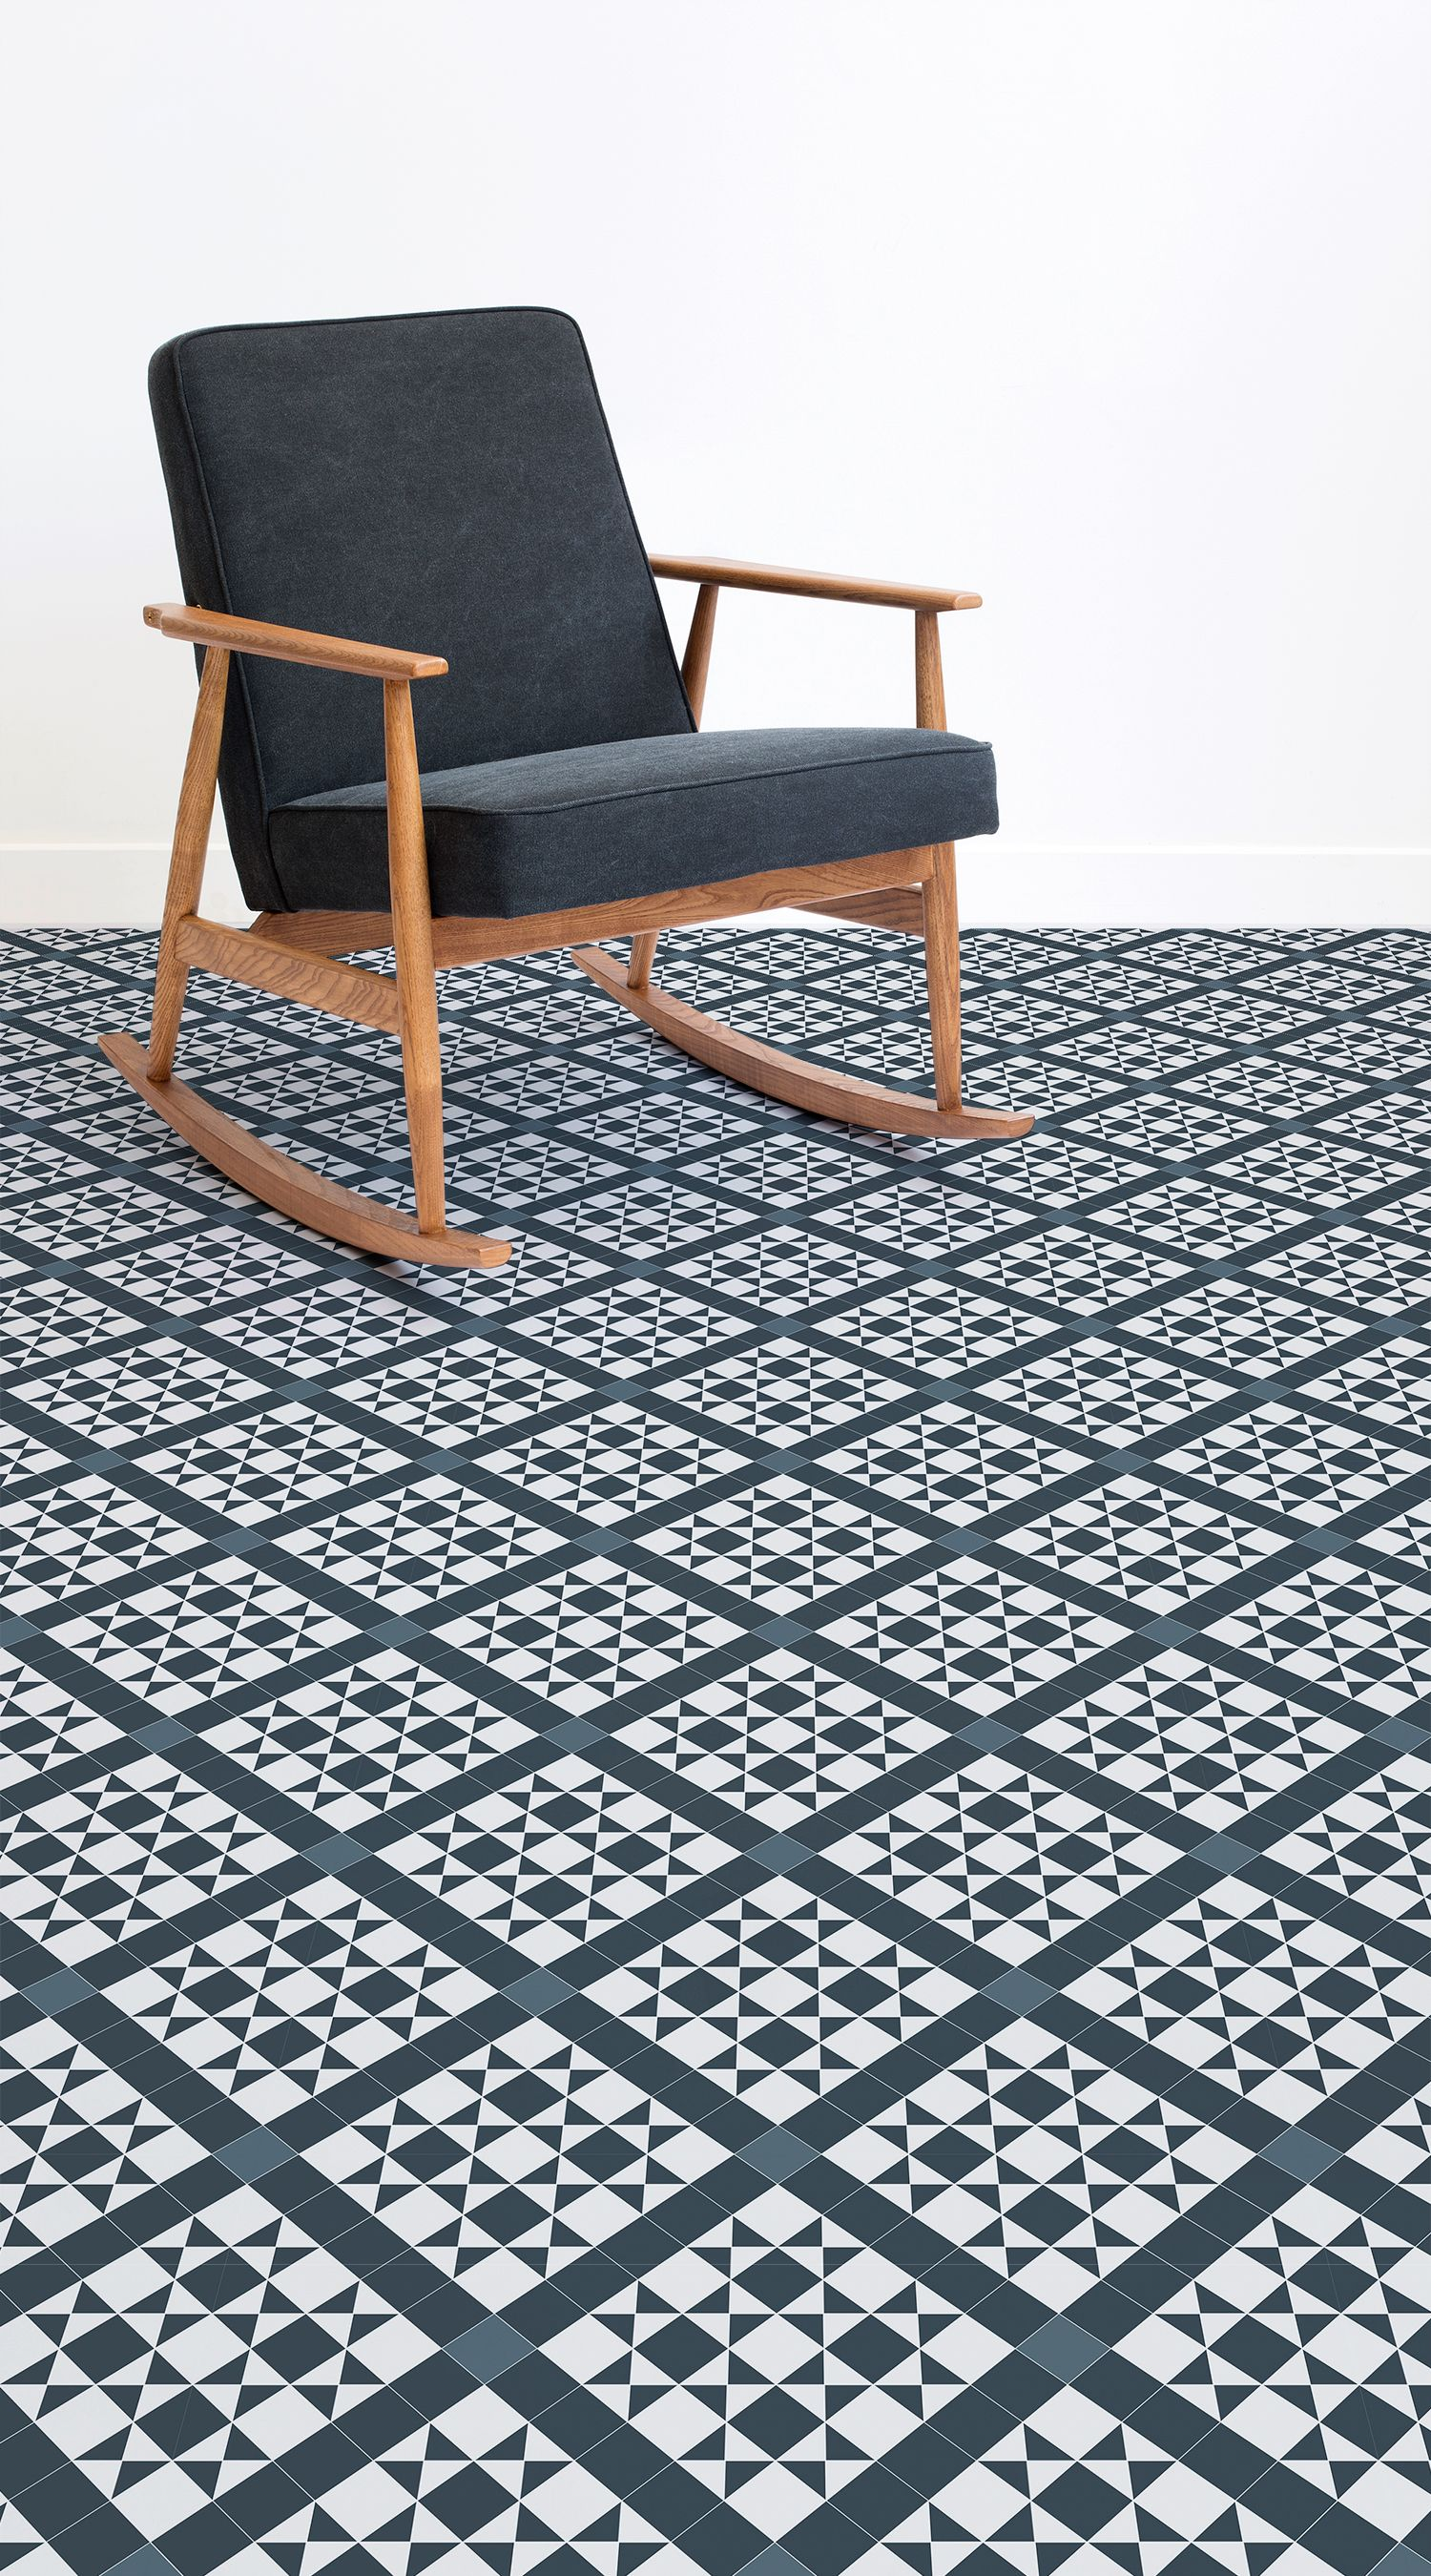 Traditional victorian tile vinyl flooring victorian tiles bond is a traditional victorian tile vinyl flooring design with deep navy latticing patterns inspired dailygadgetfo Image collections